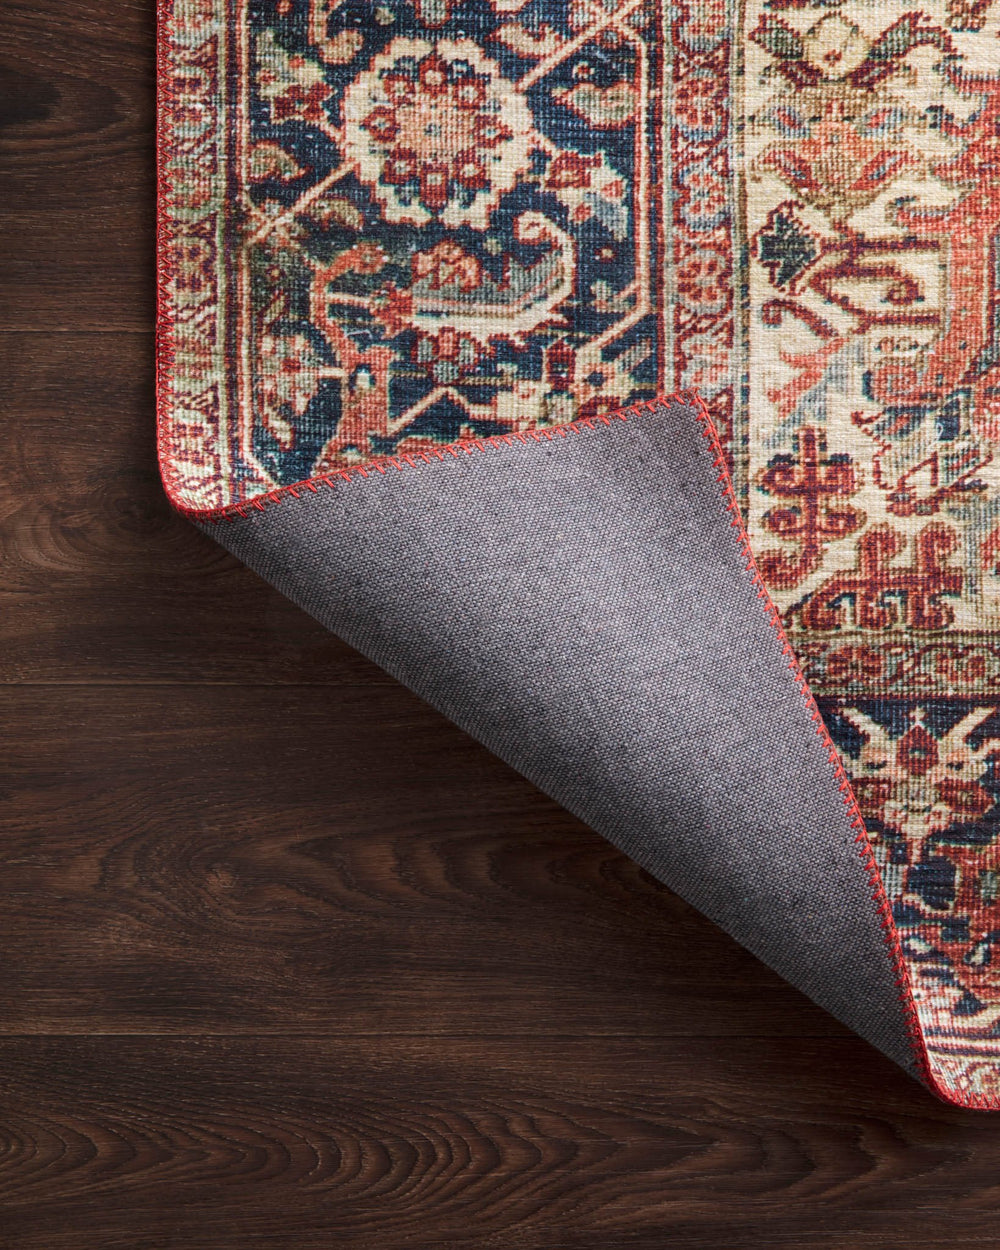 The Layla Collection is traditional and timeless, with a beautiful lived-in design that captures the spirit of an old-world rug. This traditional power-loomed rug is crafted in China of 100% polyester with a classic and sophisticated color palette and subtle patina.  Power Loomed 100% Polyester LAY-08 Red/Navy